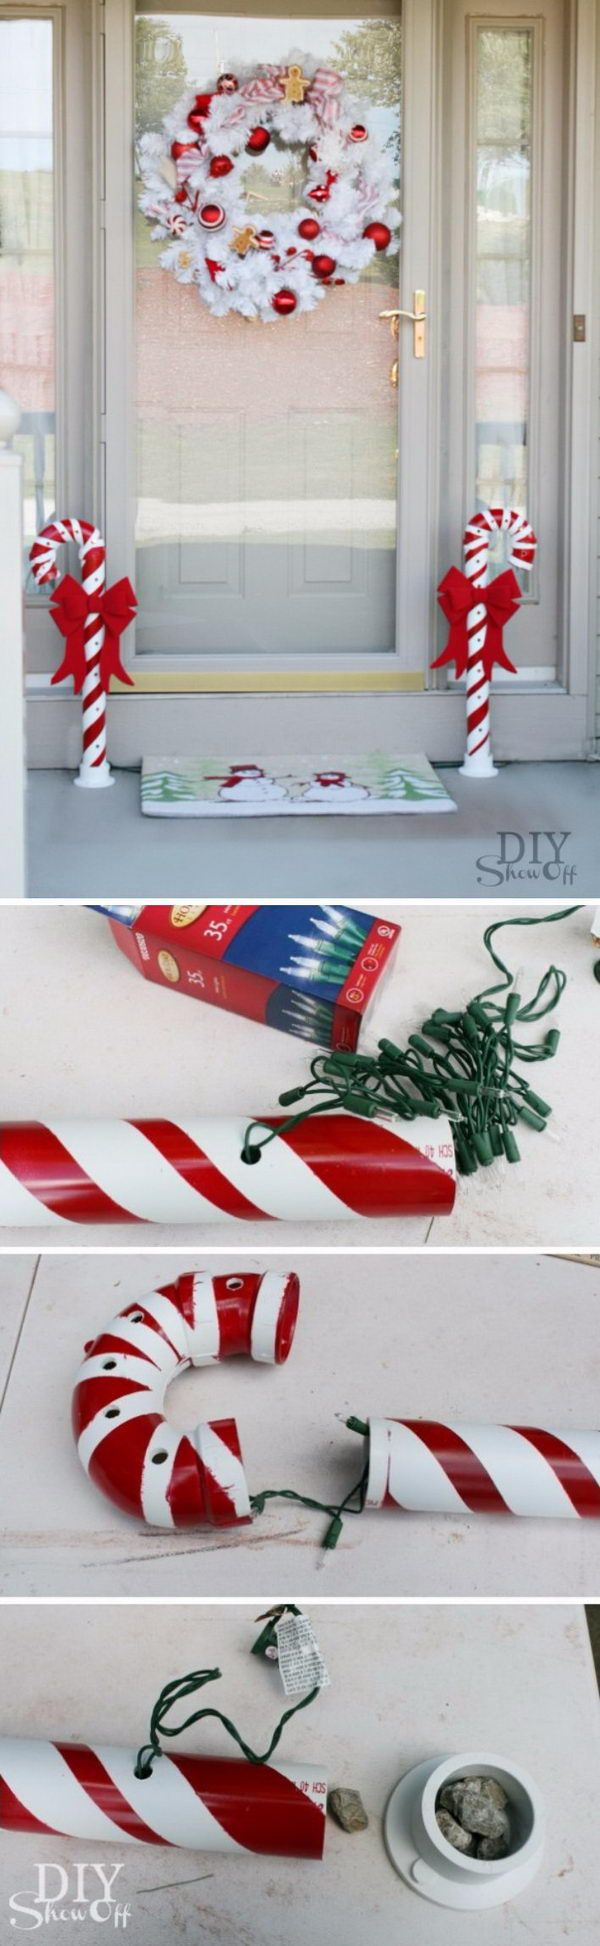 Candy Cane Outdoor Decorations 40 Festive Outdoor Christmas Decorations  Pvc Pipe Candy Canes